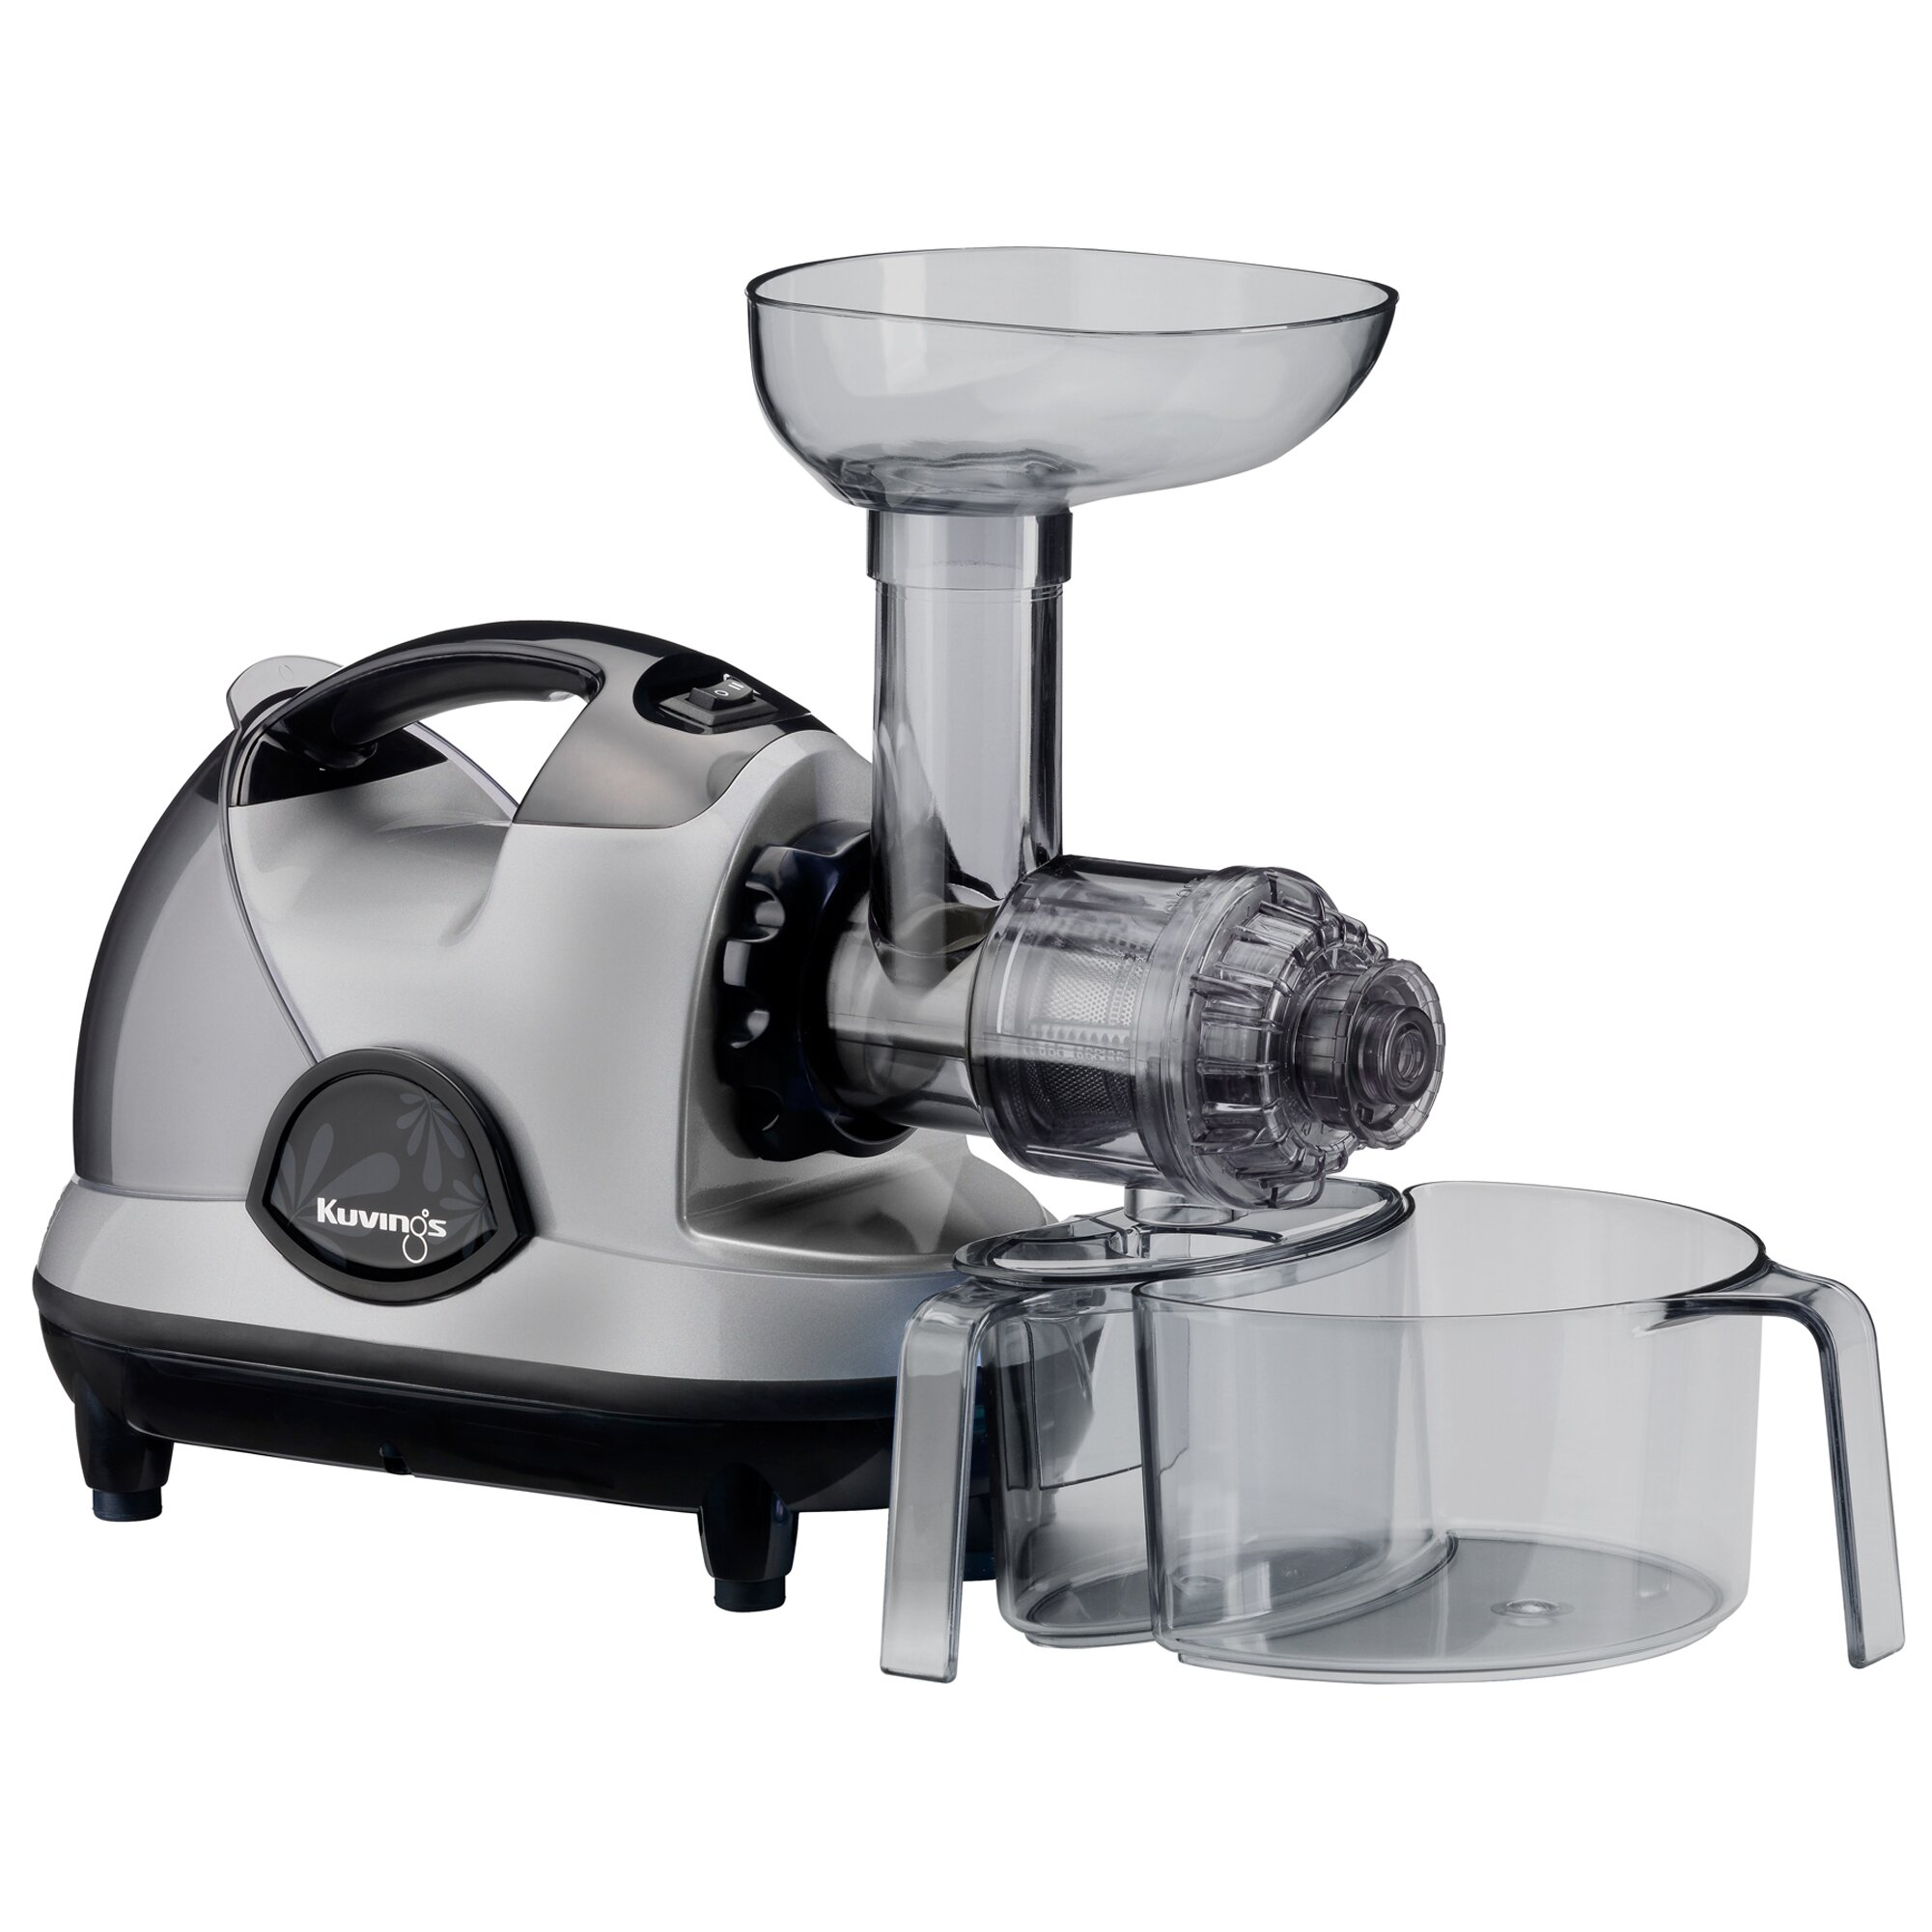 Kuvings Slow Masticating Juicer : KUvINGS Multi-Purpose Slow Juicer & Reviews Wayfair